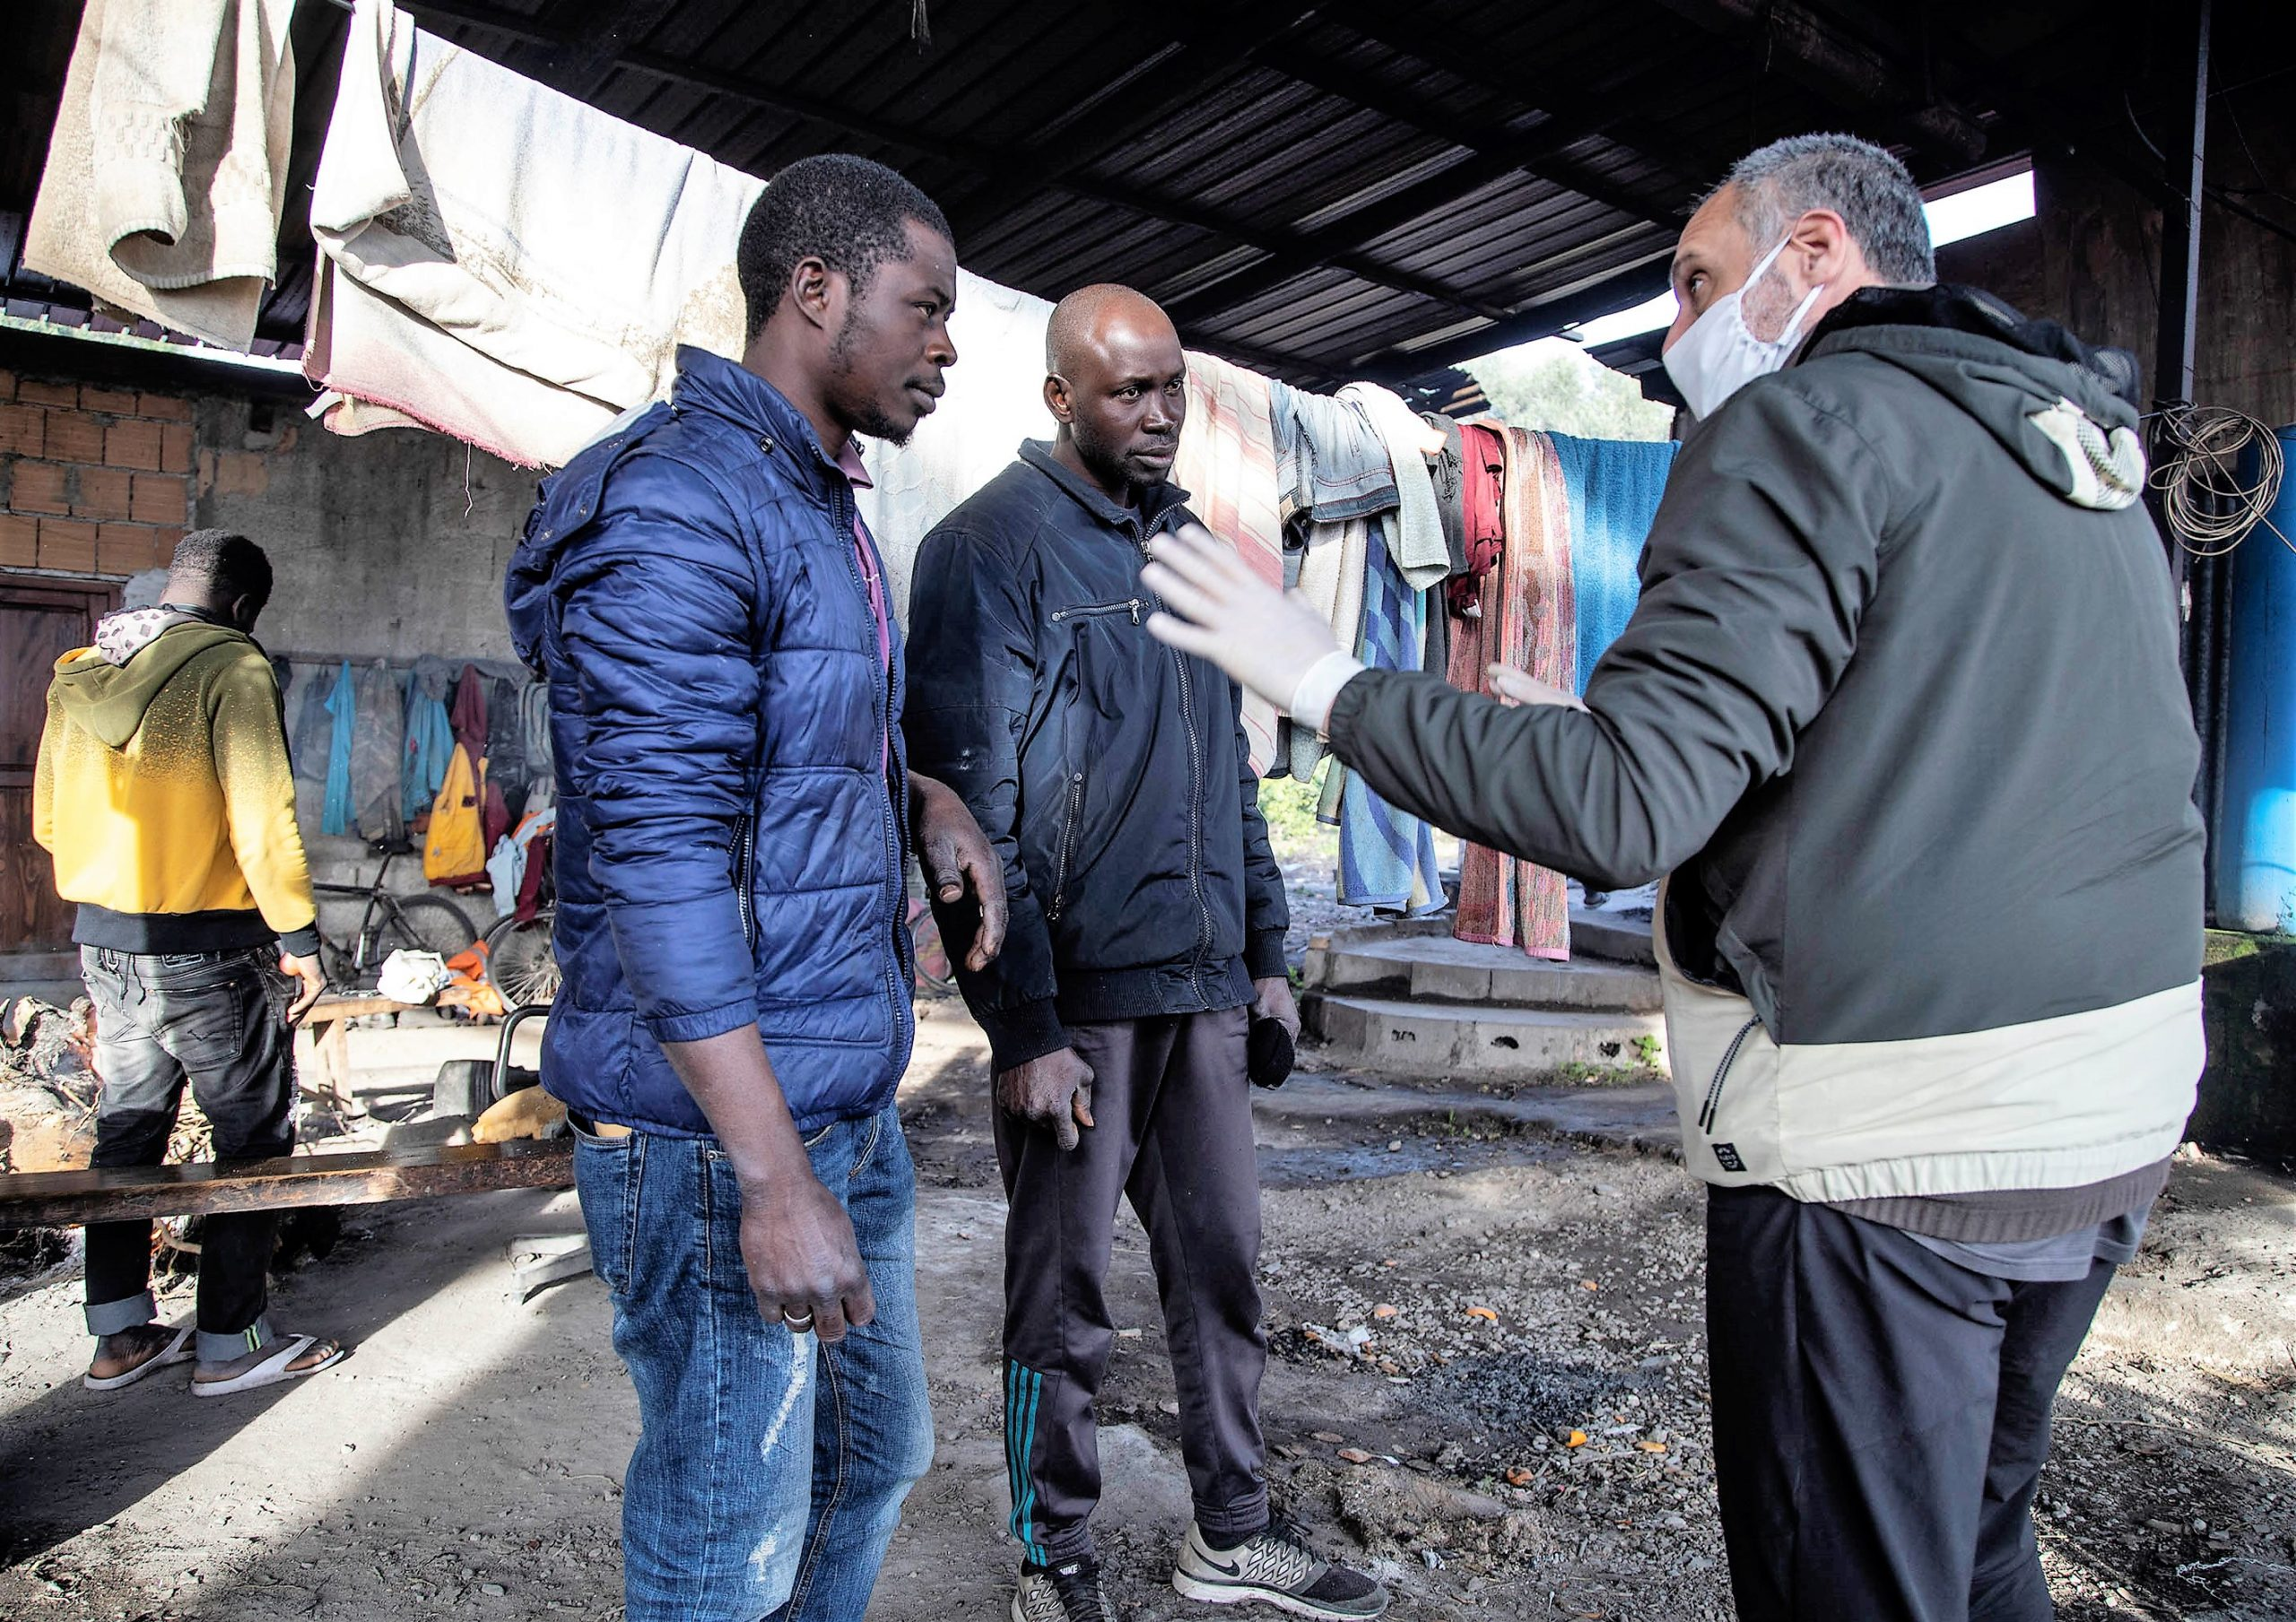 Waldensian works with African refugees